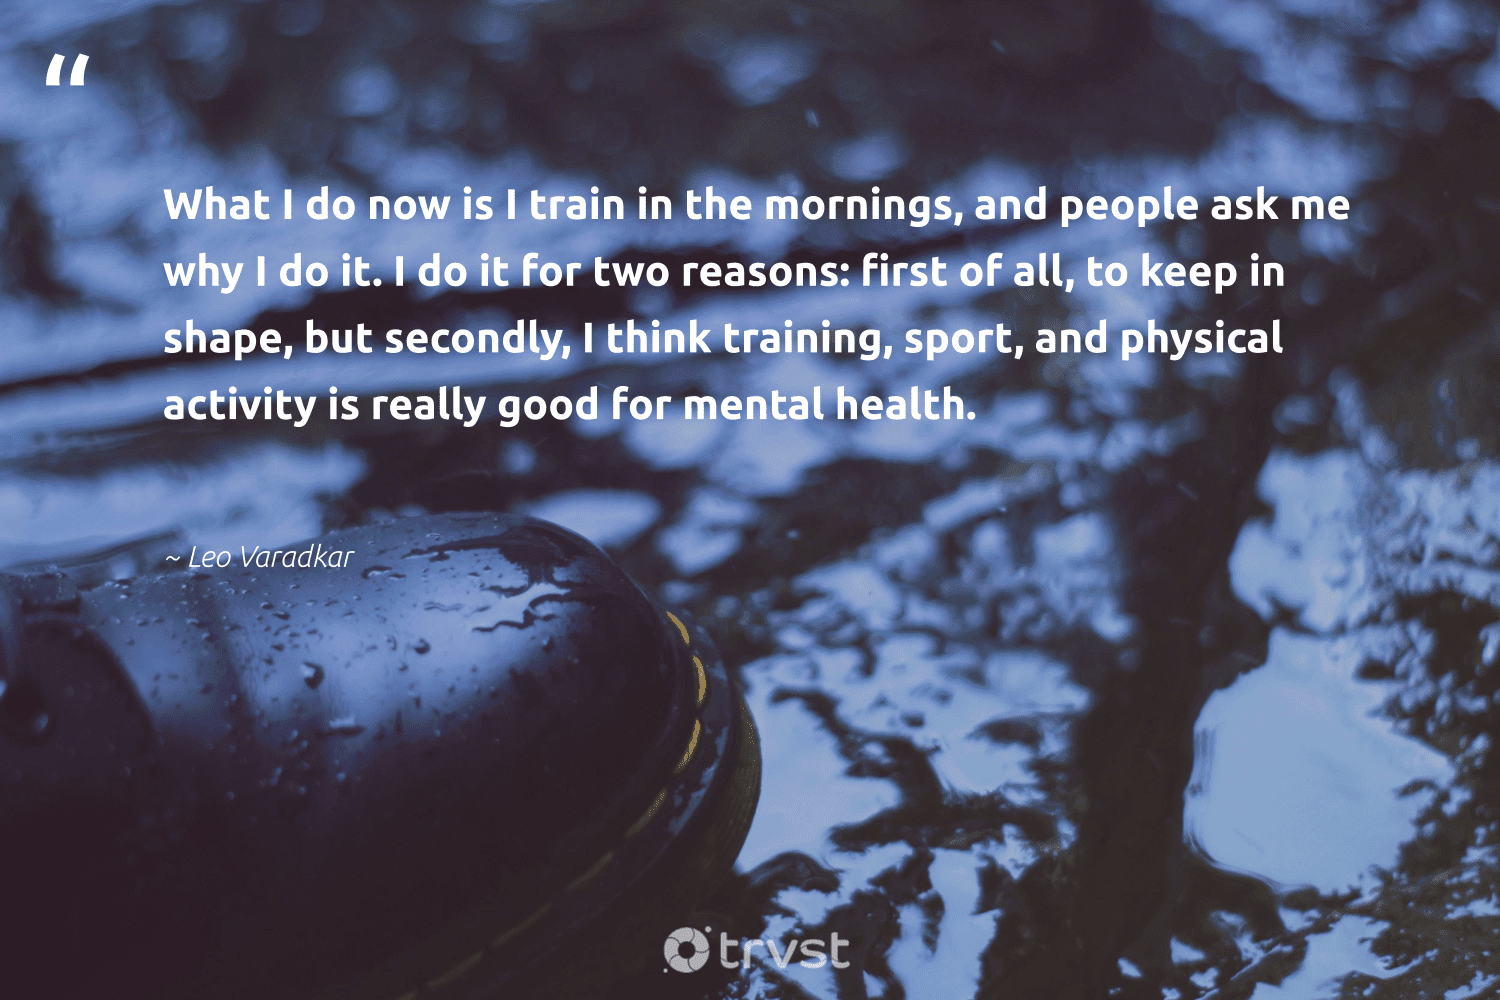 """What I do now is I train in the mornings, and people ask me why I do it. I do it for two reasons: first of all, to keep in shape, but secondly, I think training, sport, and physical activity is really good for mental health.""  - Leo Varadkar #trvst #quotes #mentalhealth #health #depression #togetherwecan #mindset #ecoconscious #mentalhealthawareness #begreat #changemakers #thinkgreen"